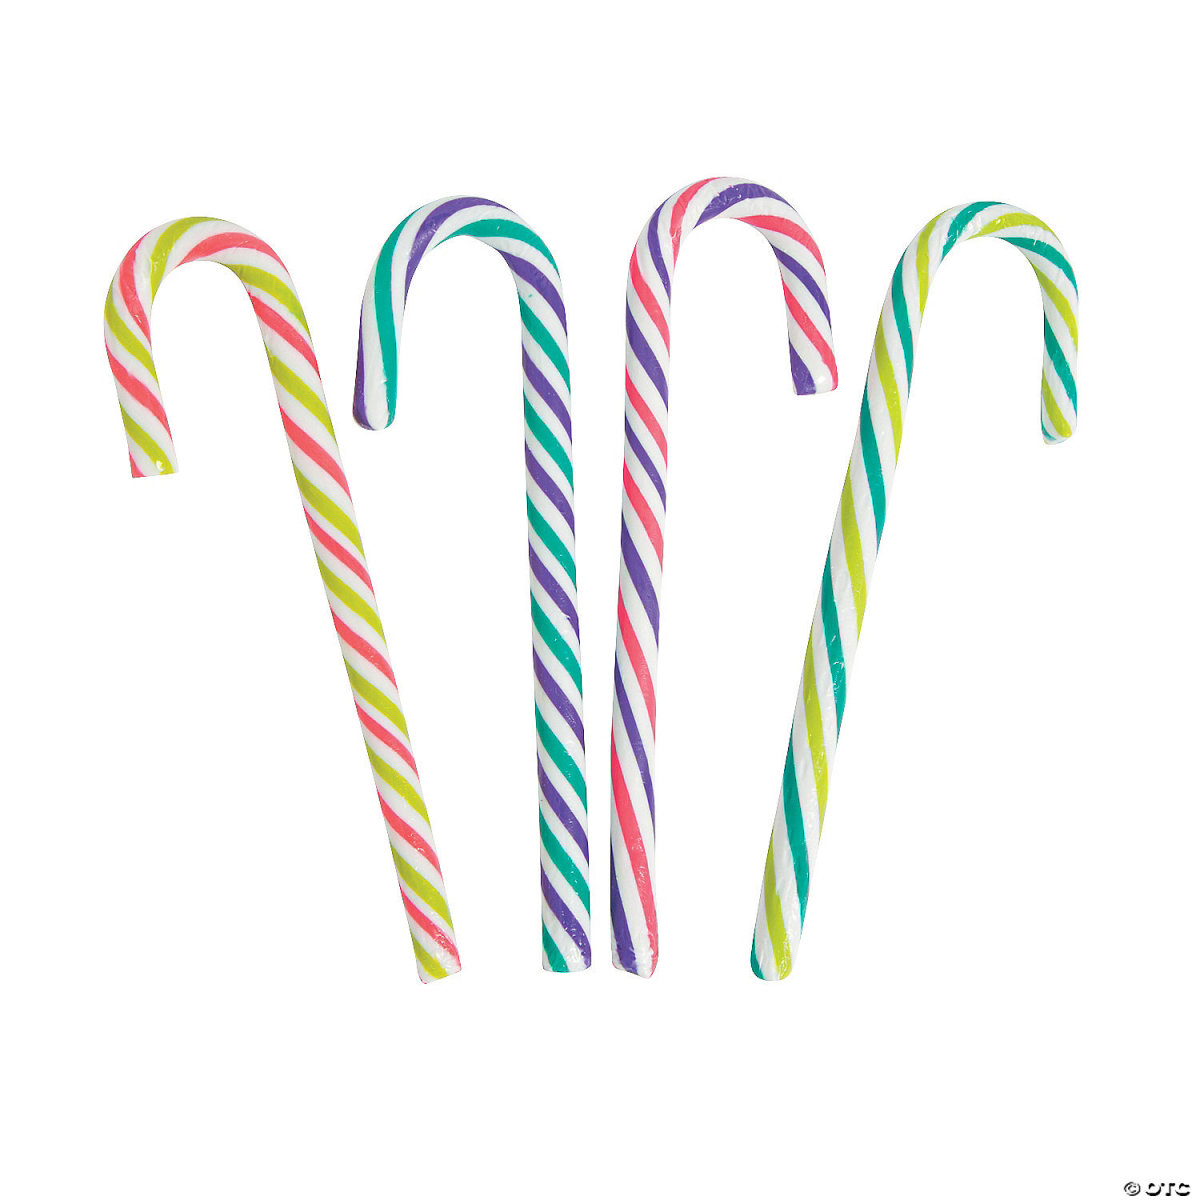 At first, candy canes were white. Later on, the red stripes and peppermint flavor were added. Nowadays, they come in a variety of colors and flavors.